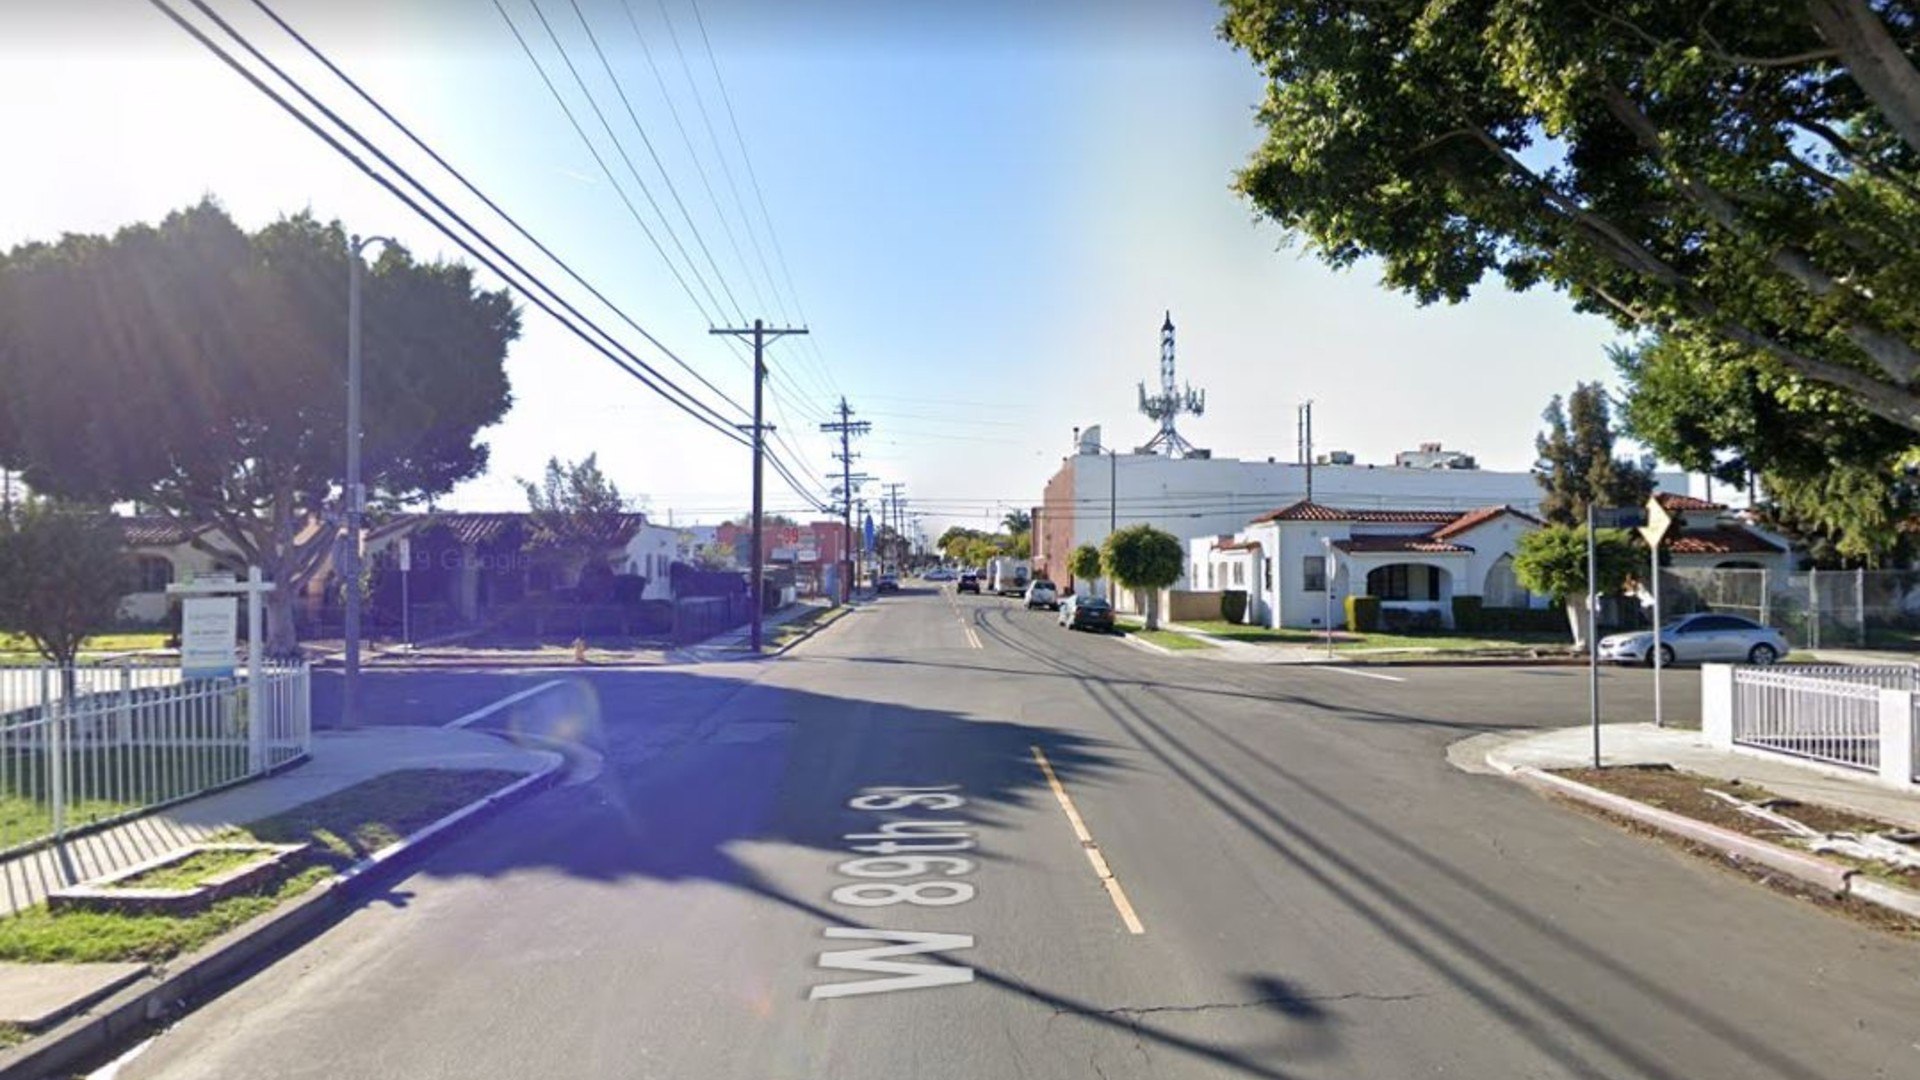 The intersection of 89th Street and Hobart Avenue in the Gramercy Park neighborhood of South Los Angeles, as pictured in a Google Street View image.